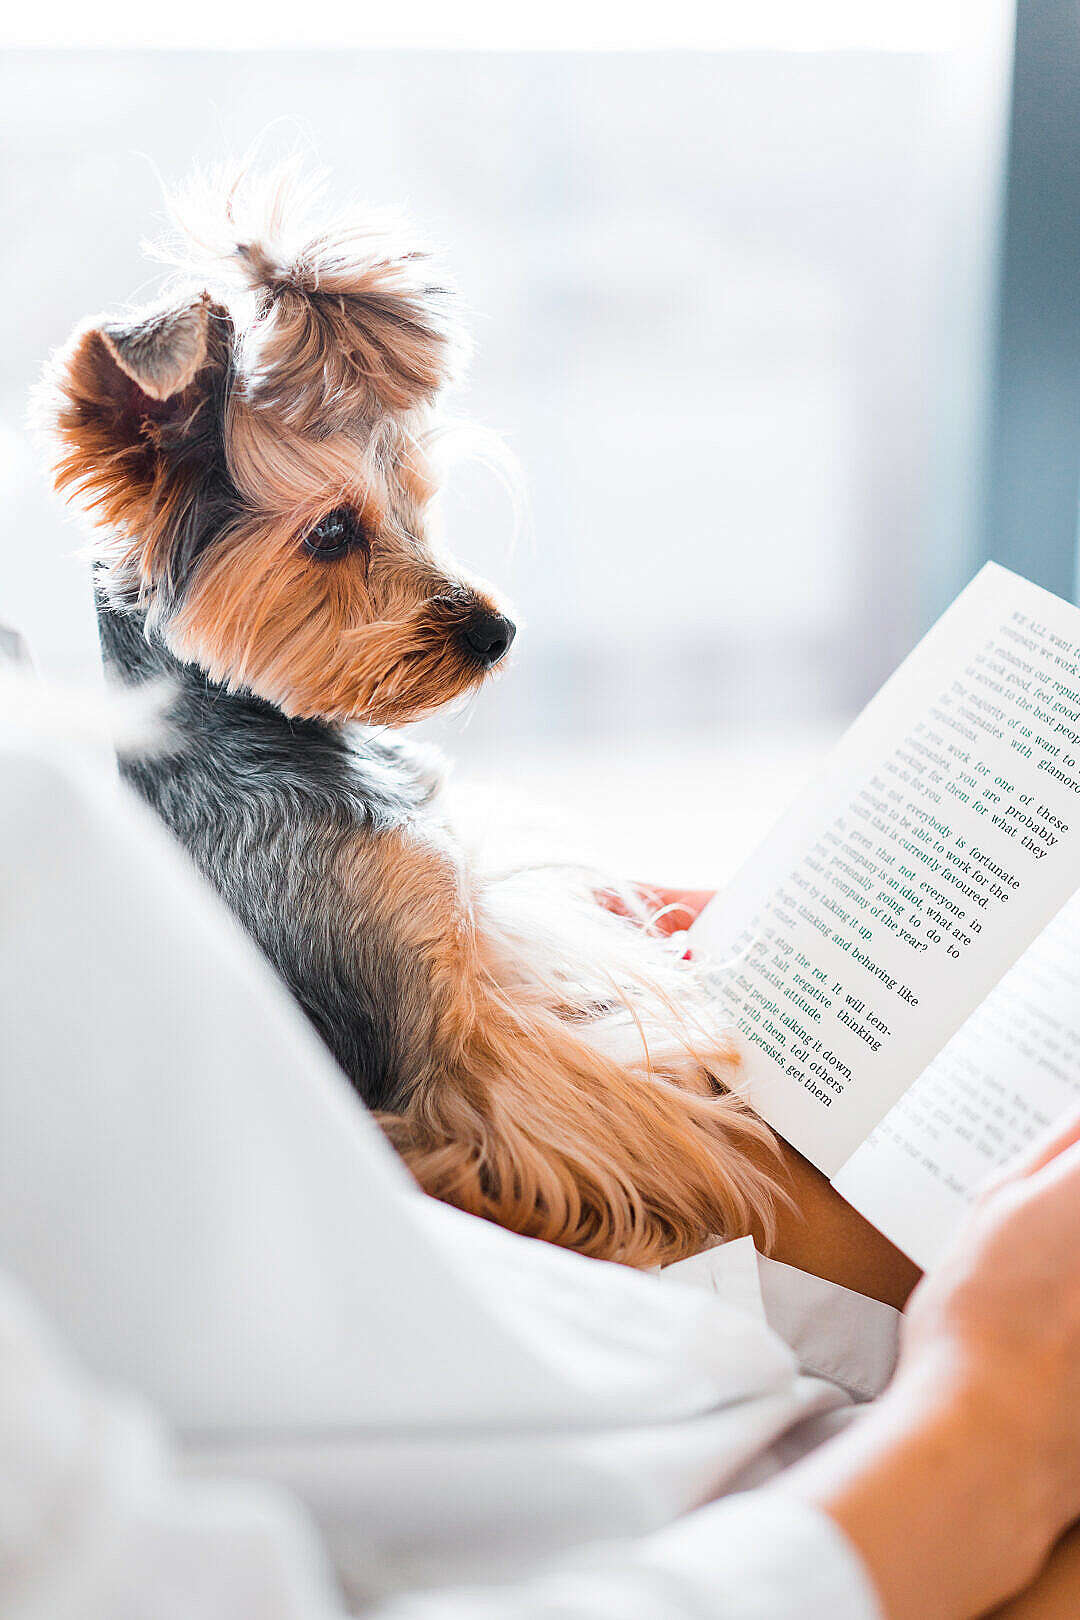 Download Cute Dog Reading a Book FREE Stock Photo